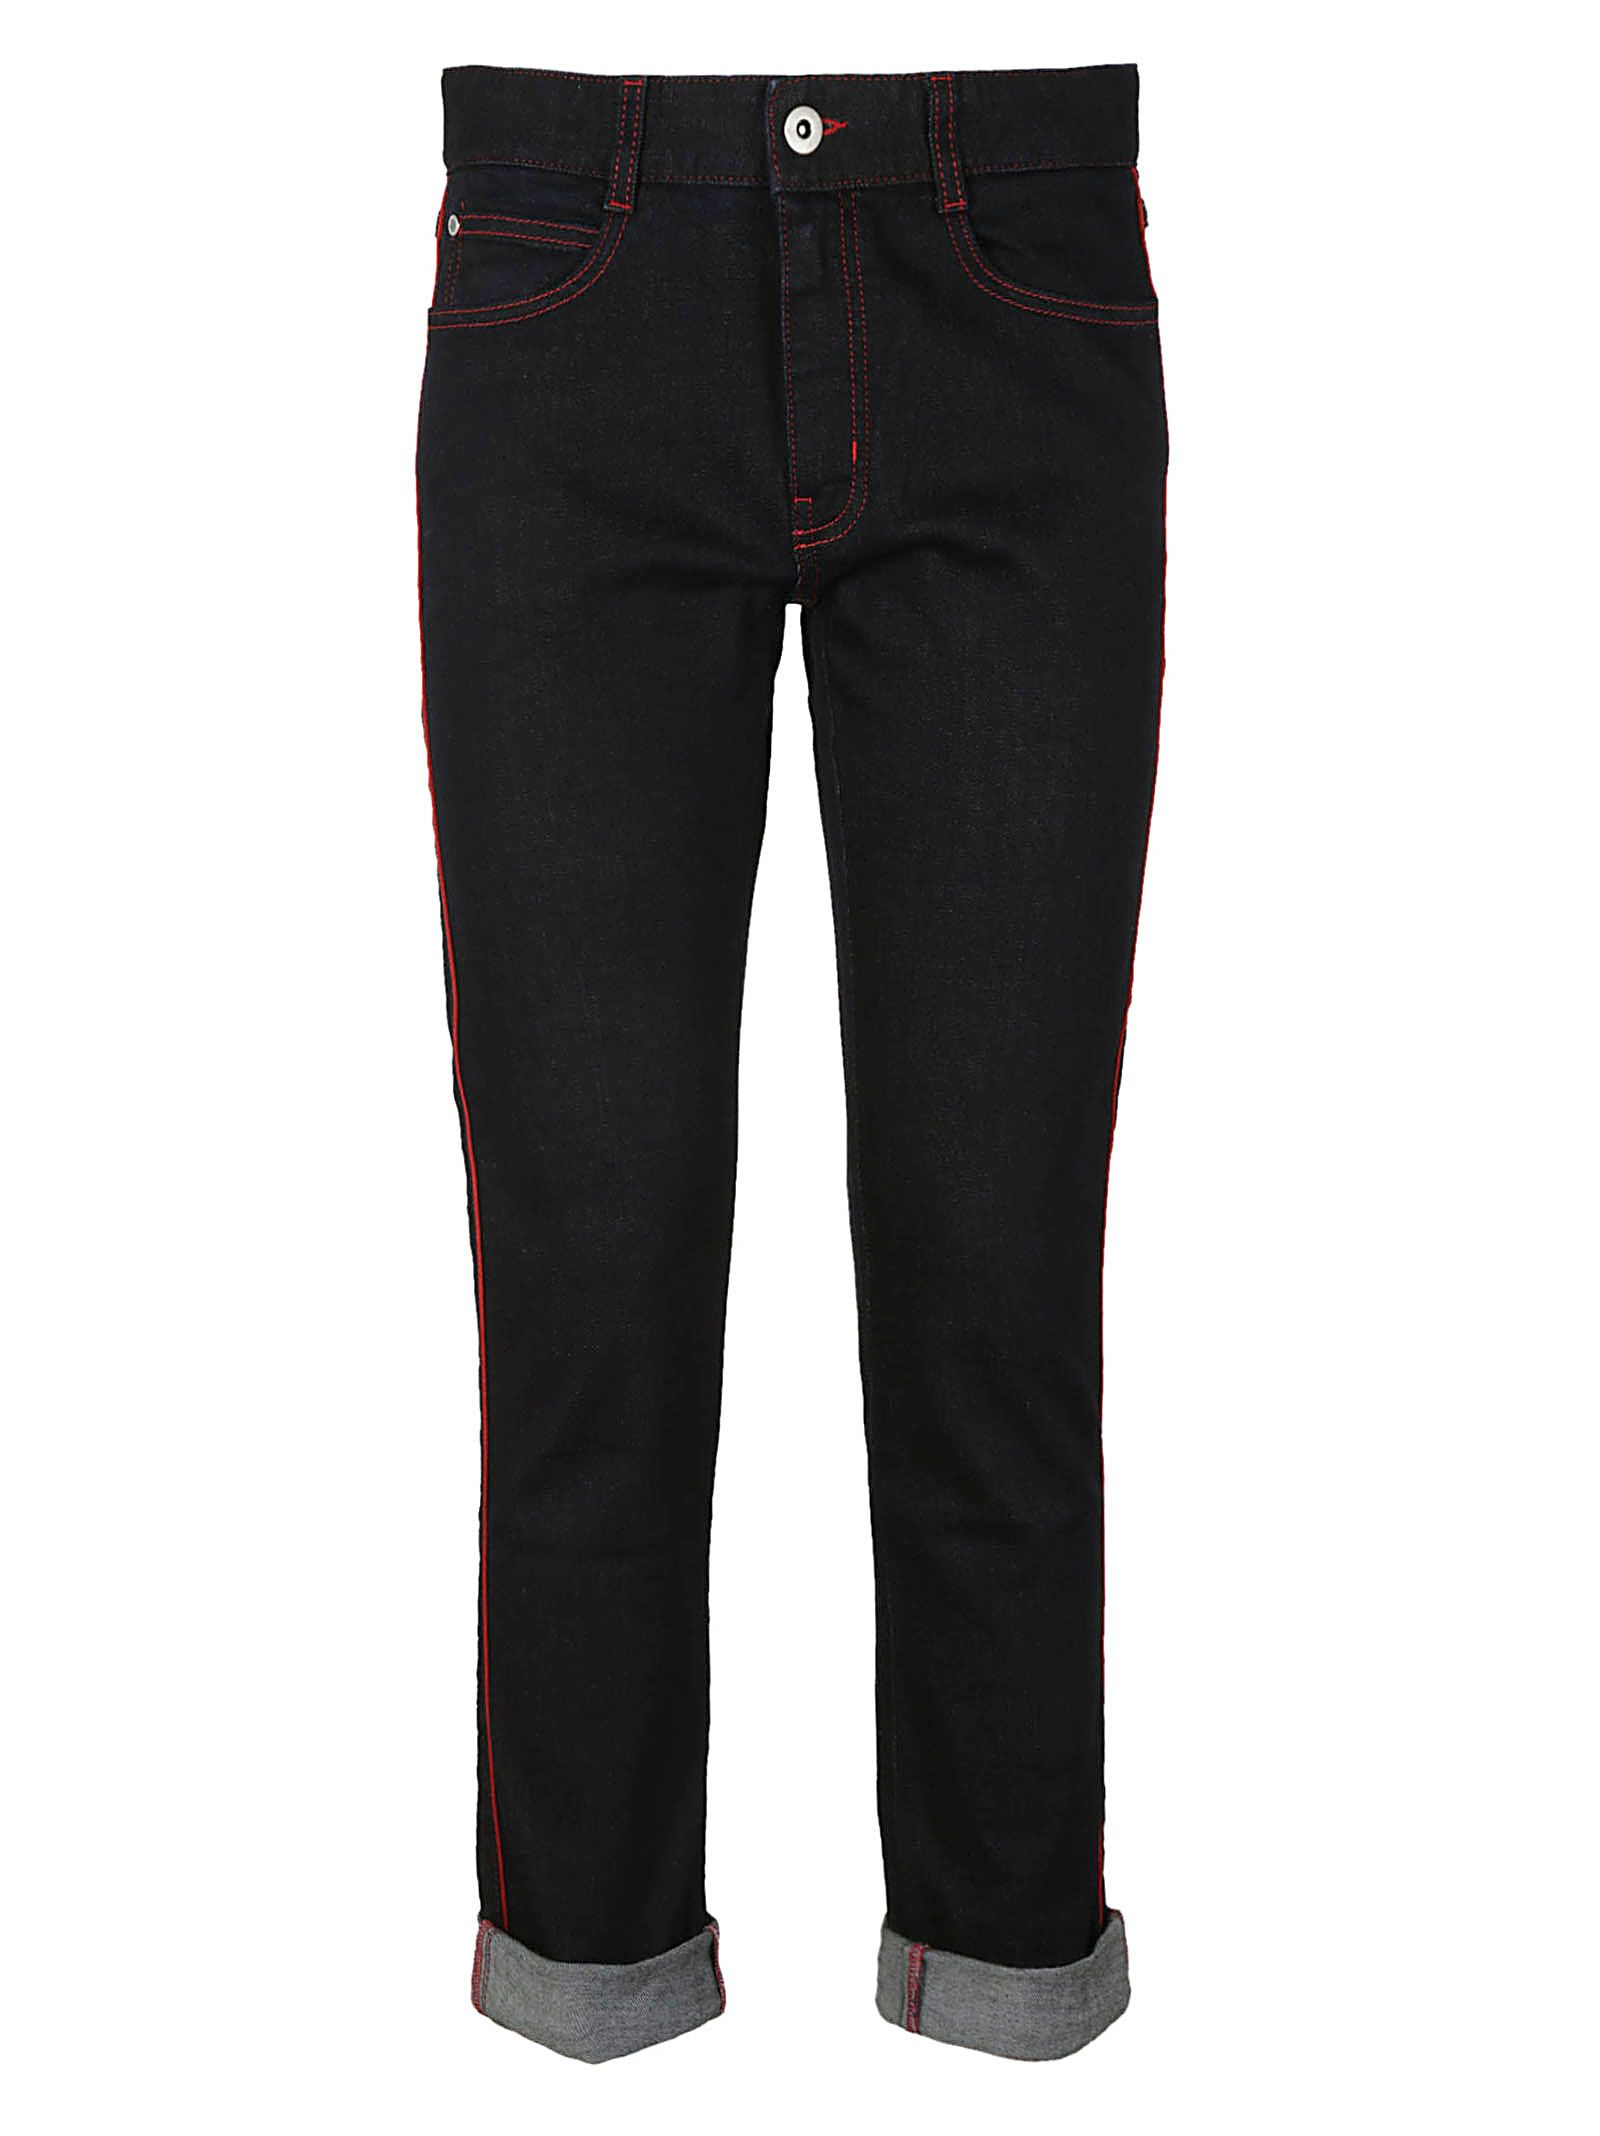 Stella Mccartney Cropped Jeans